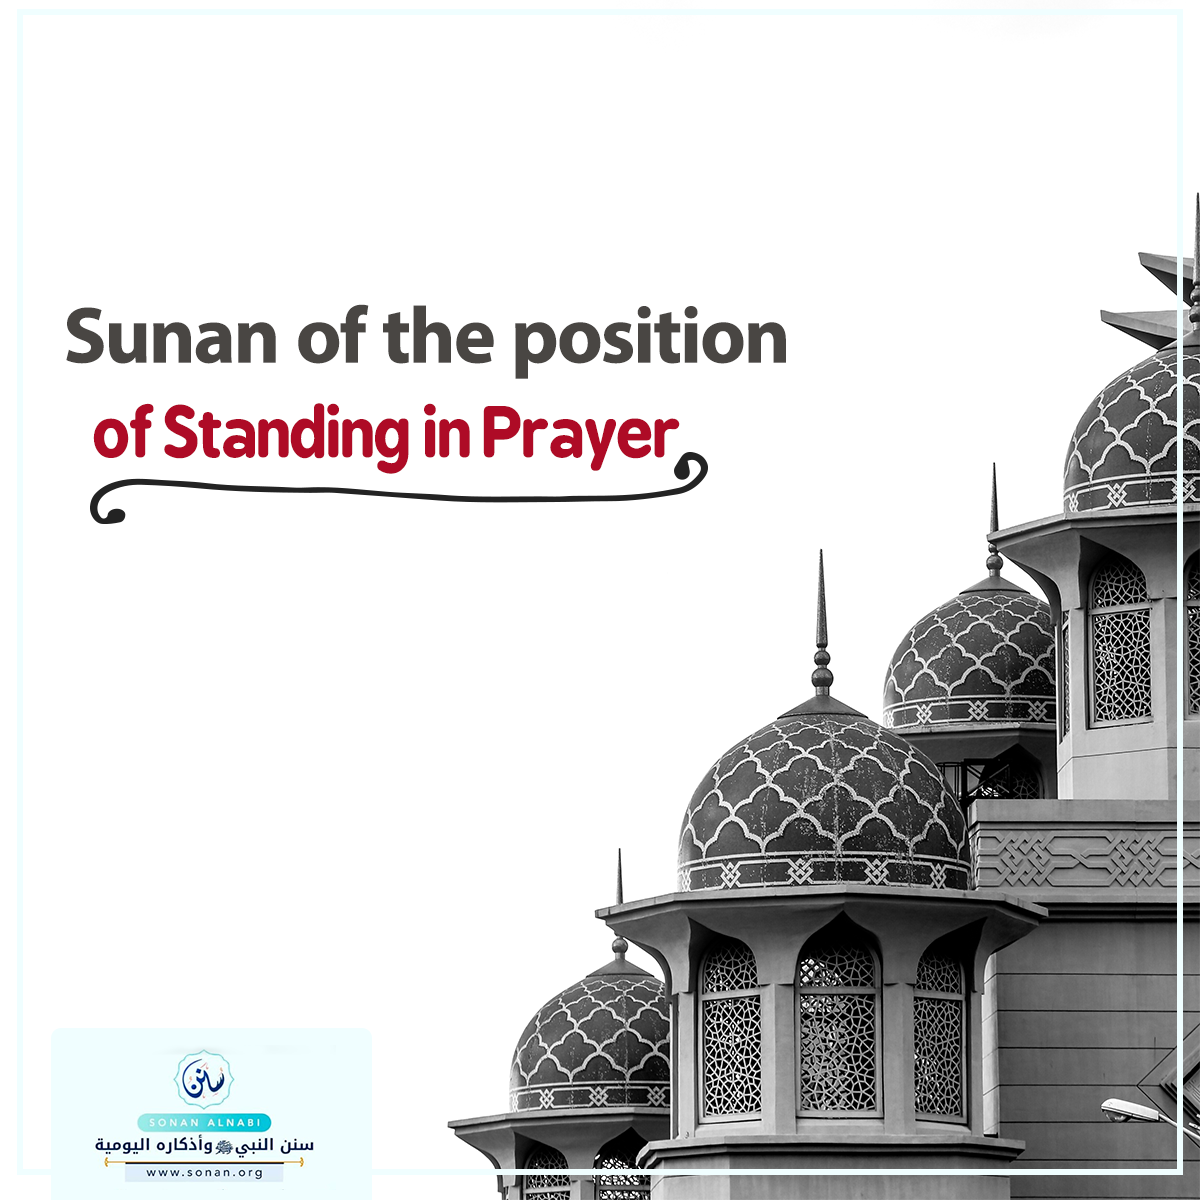 Sunan of the position of Standing in Prayer